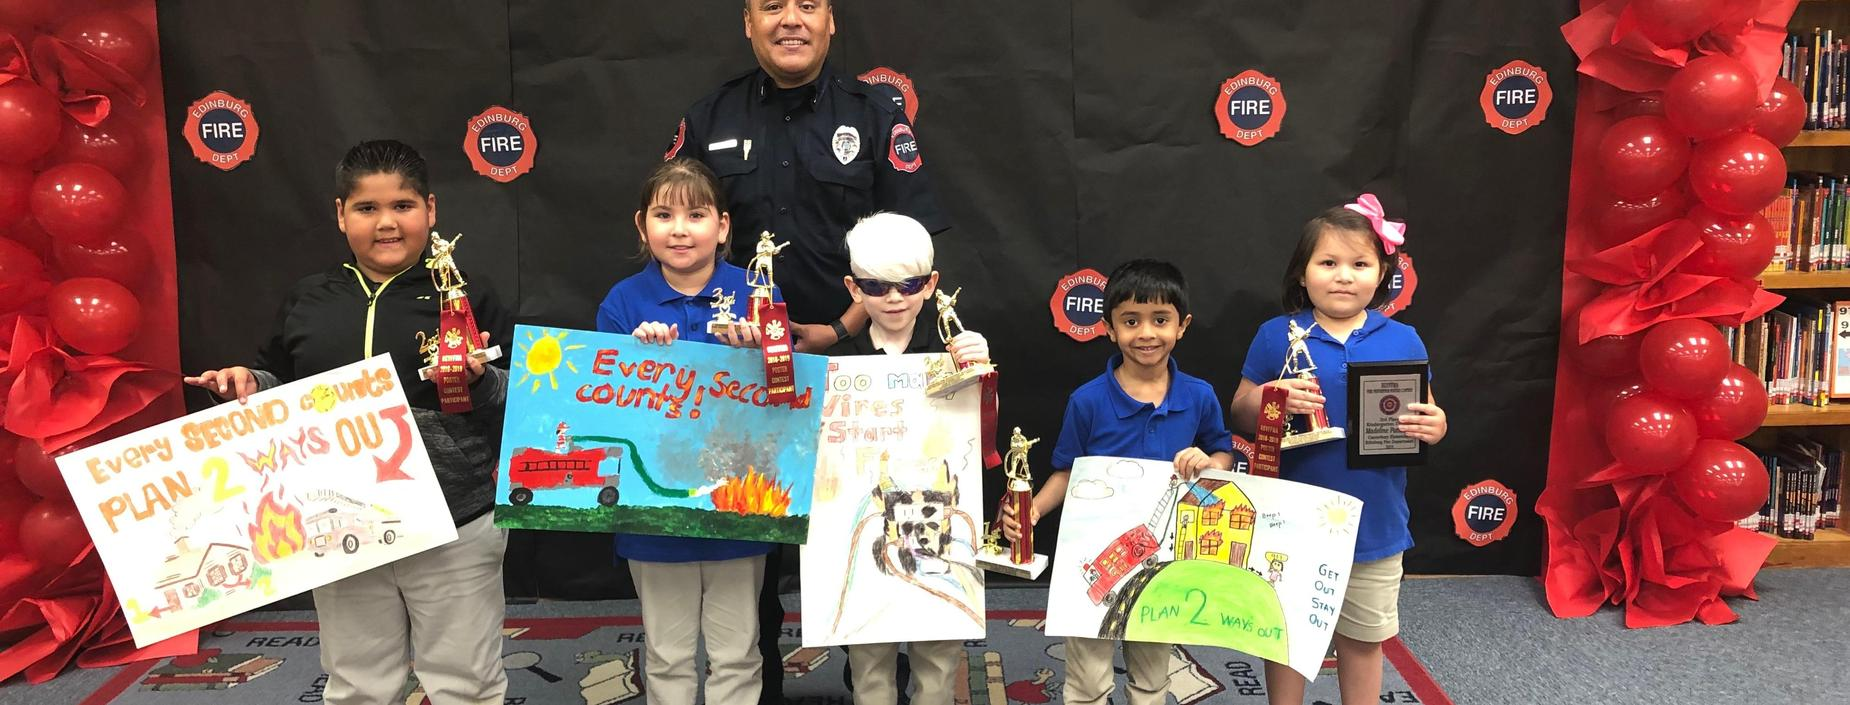 Fire Prevention Poster Contest Winner